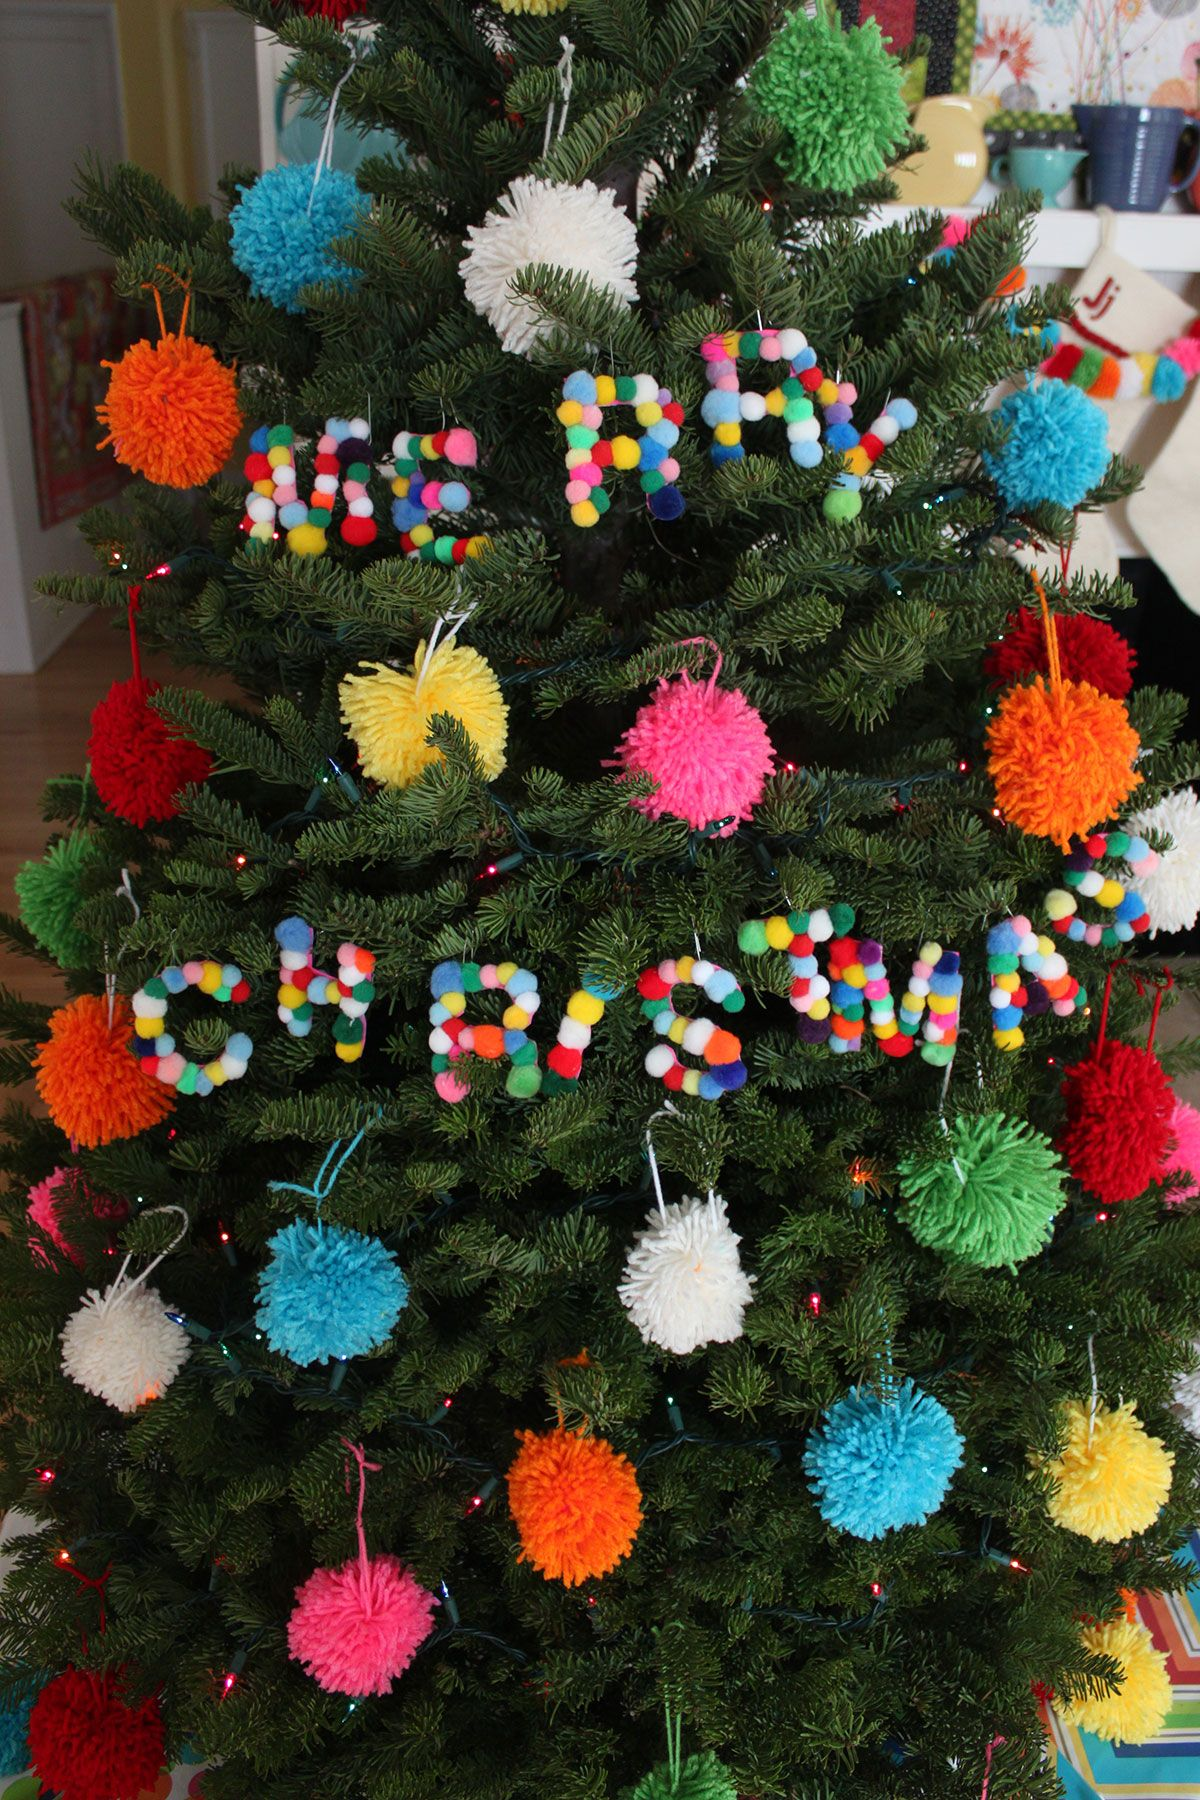 Diy Pom Pom Letter Ornaments Paint The Gown Red Paper Christmas Decorations Pinterest Christmas Crafts Felt Christmas Decorations